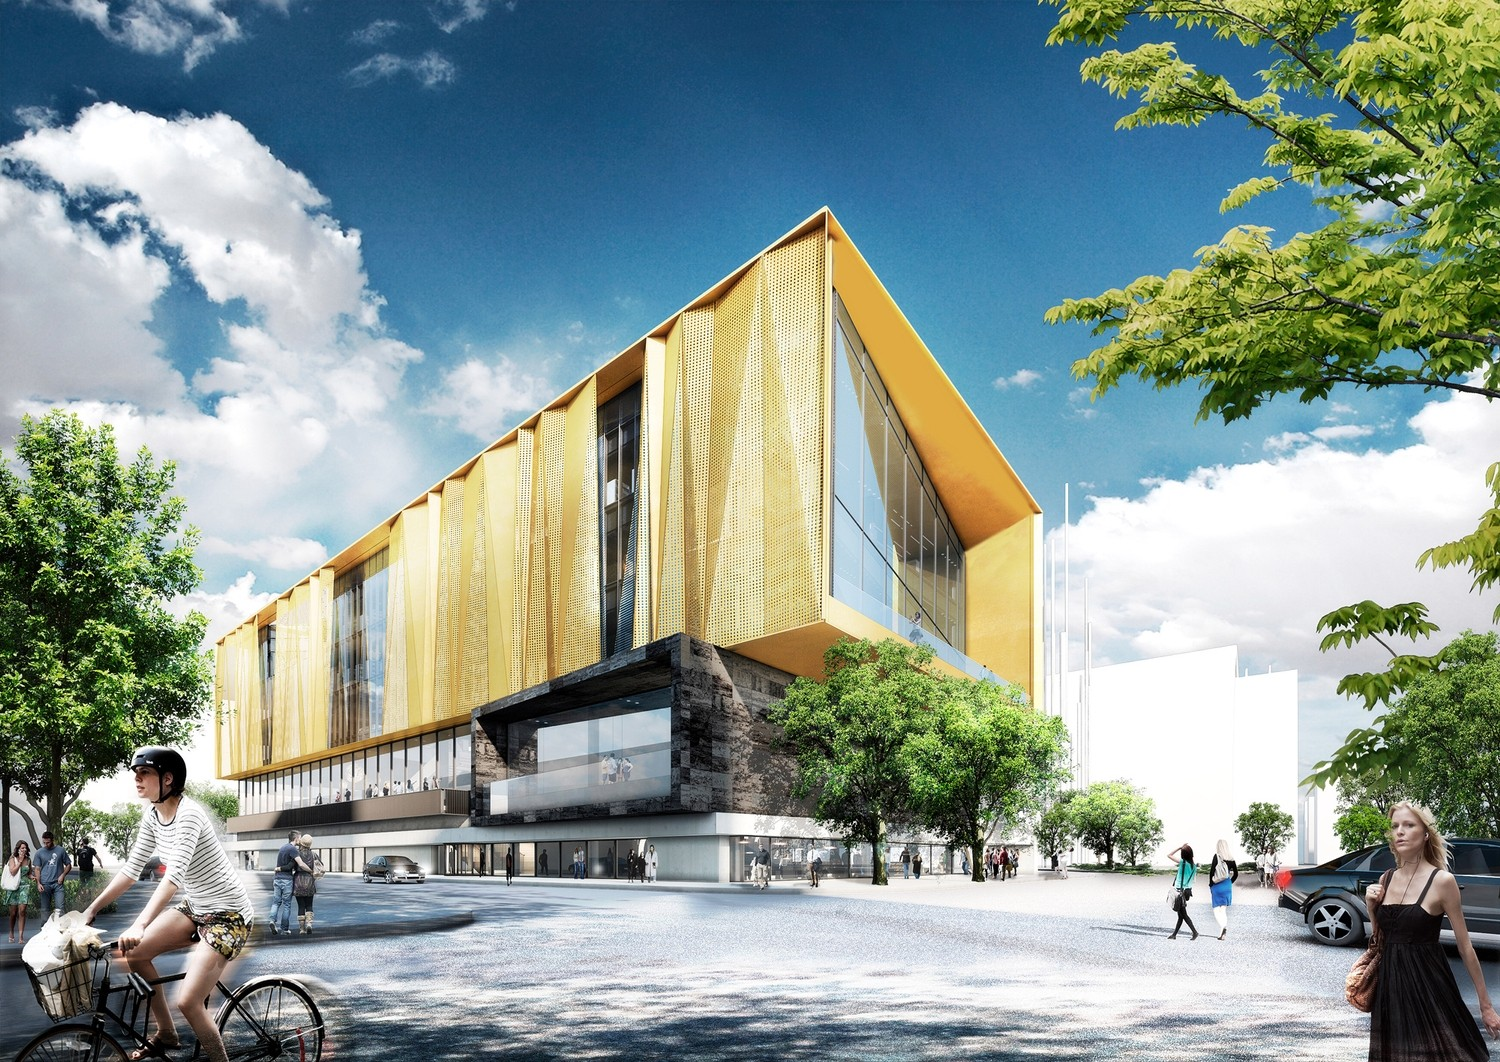 Schmidt hammer lassen reveal chirstchurch 39 s new central for Architects creative christchurch